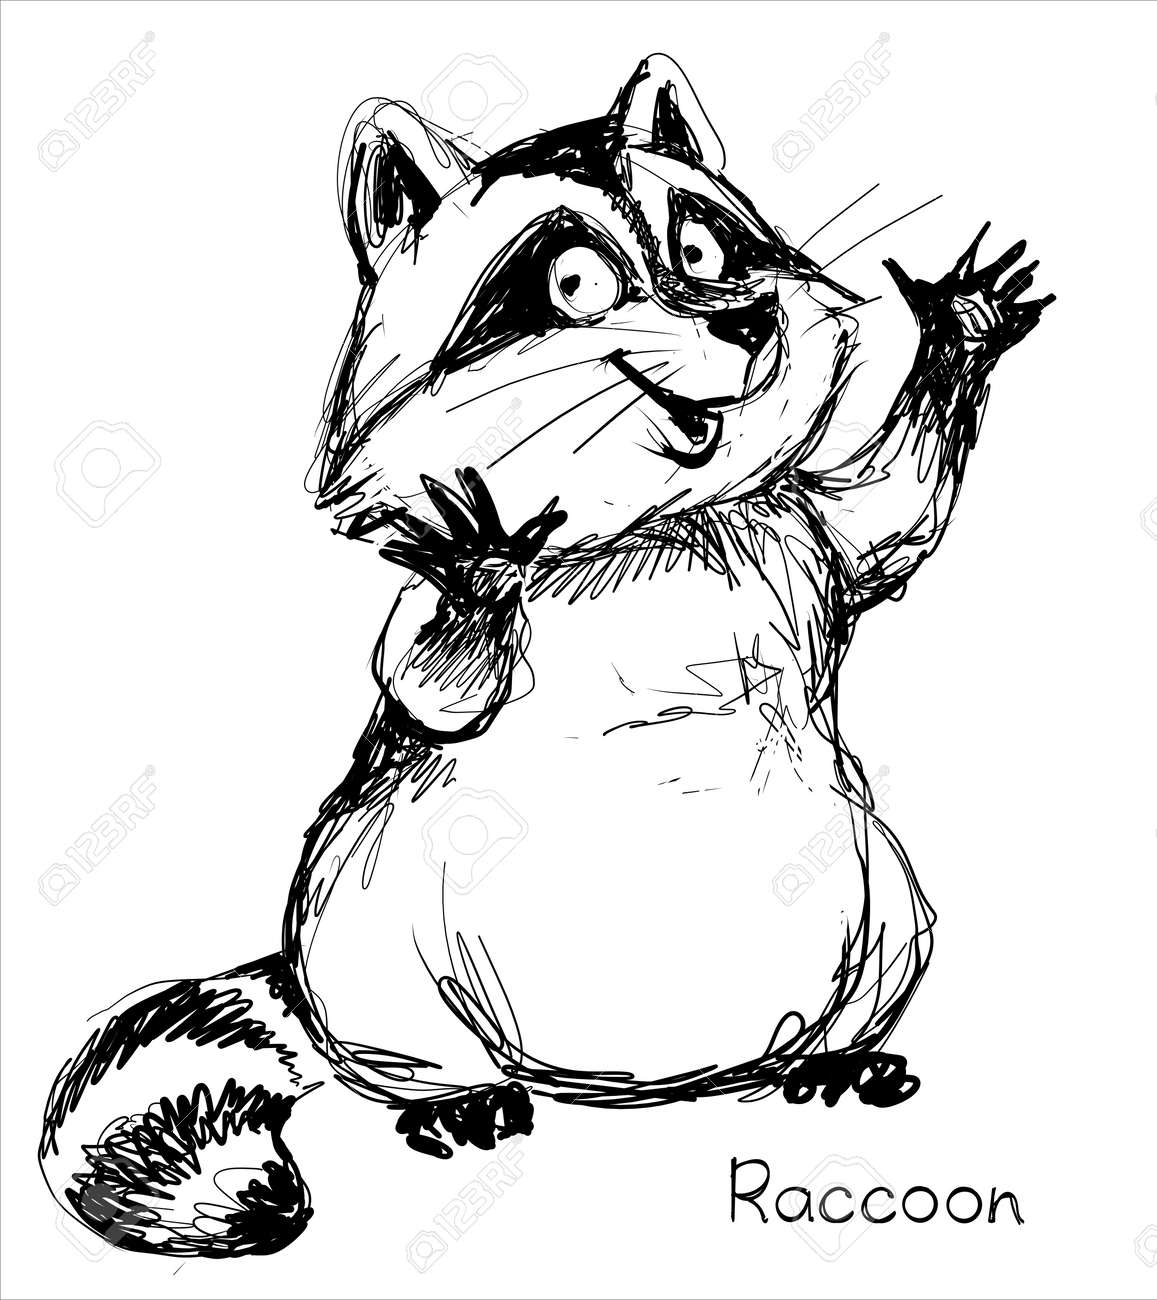 Vector. A graphic black and white sketch of a funny raccoon. - 168498586